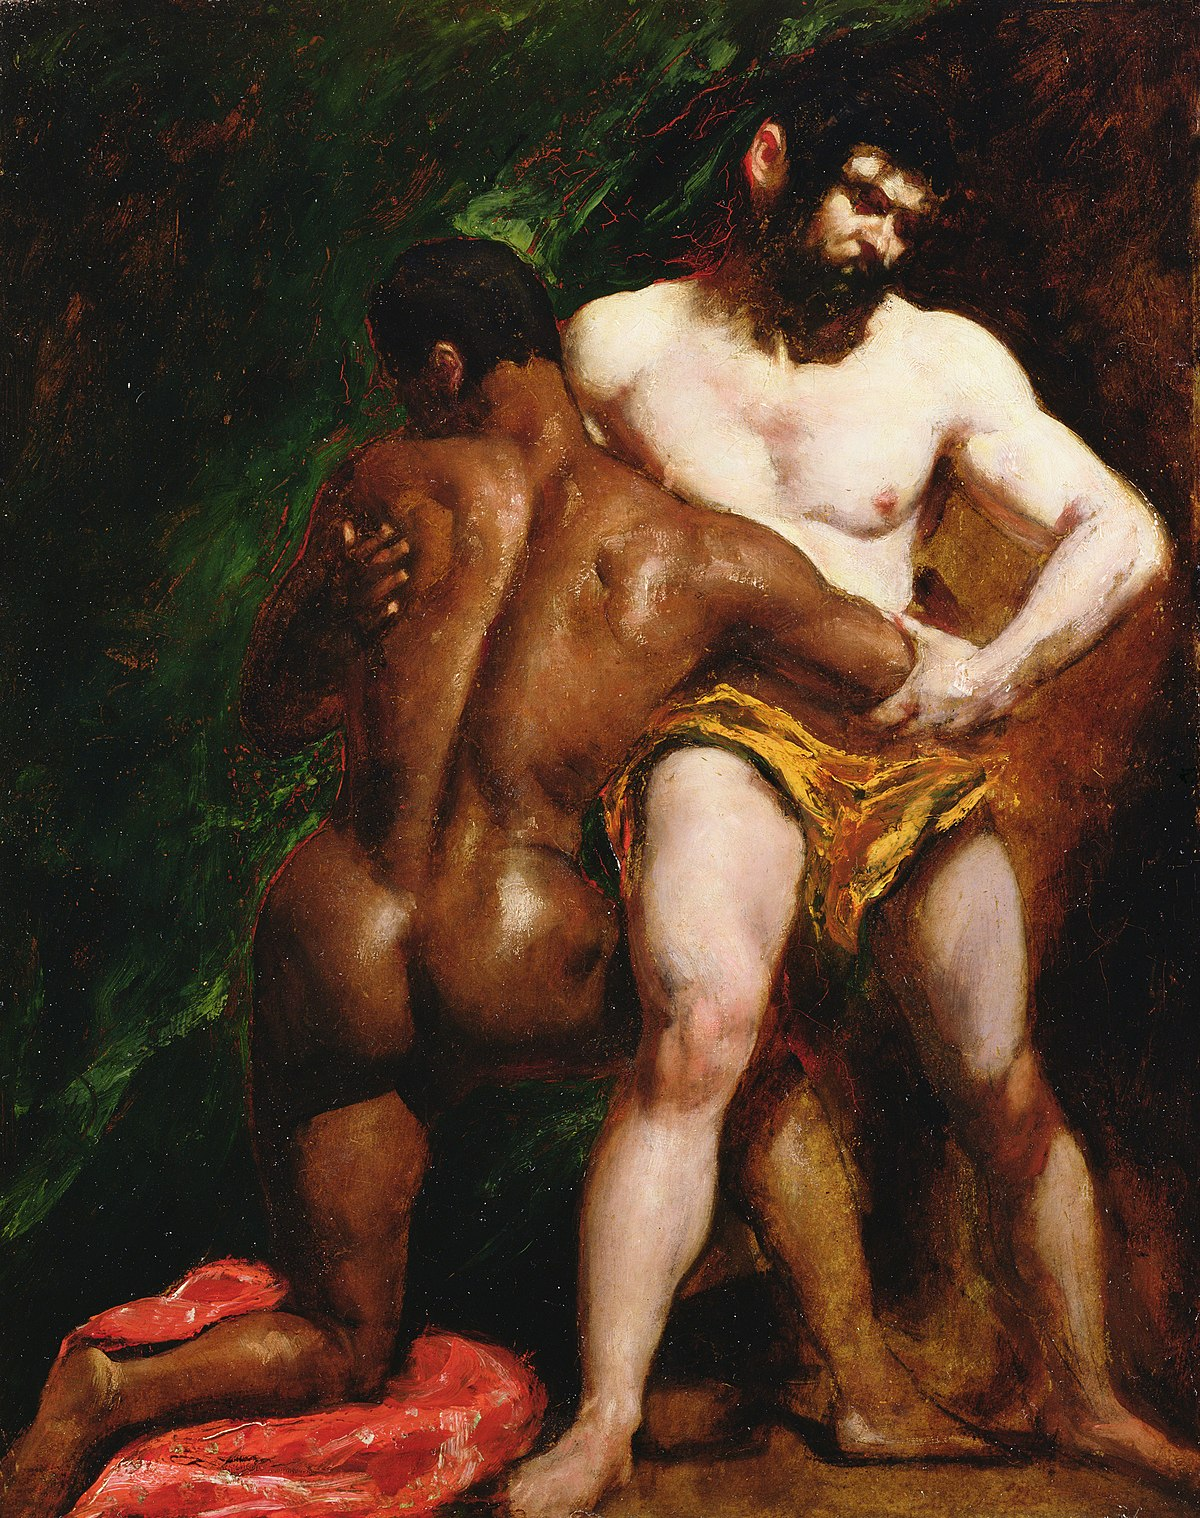 Black Men Naked Wrestling